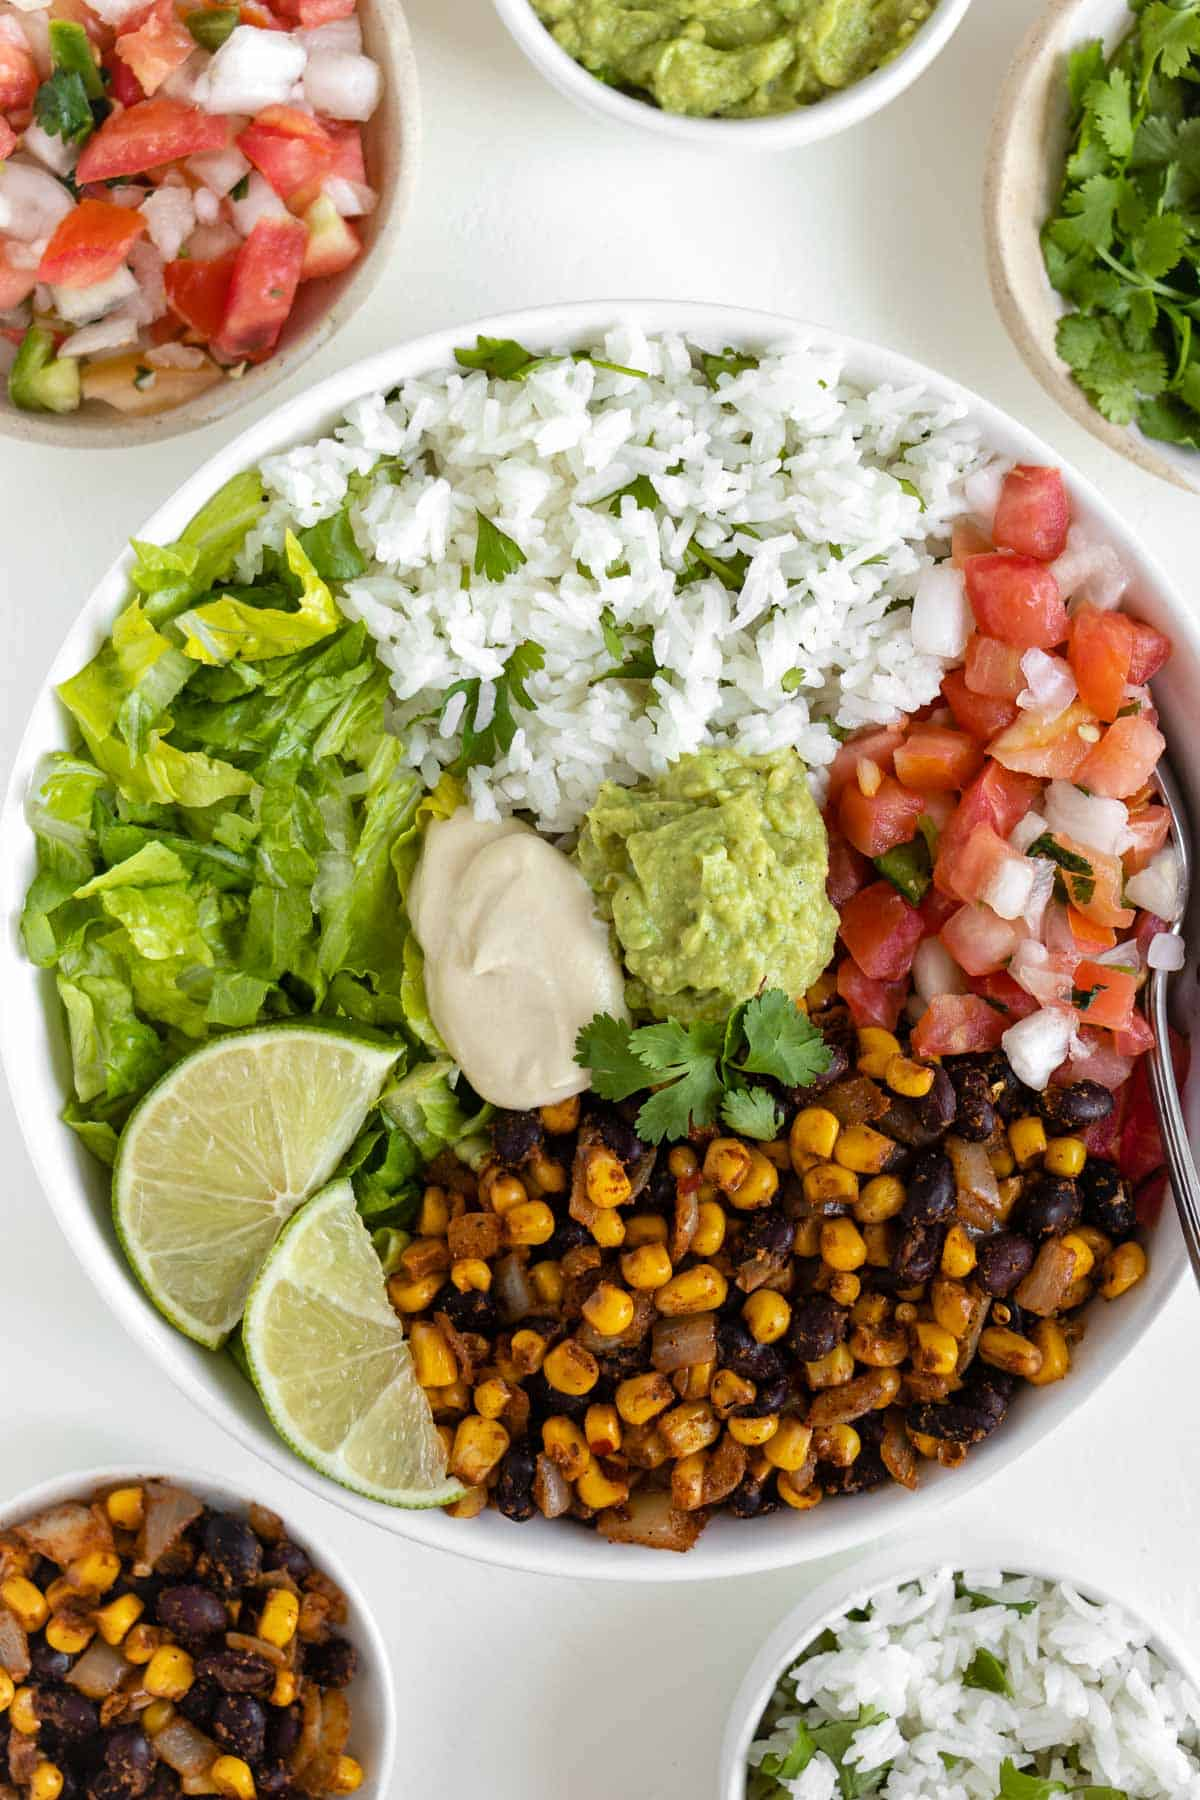 vegan burrito bowl with black beans, corn, cilantro lime rice, pico de gallo, lettuce, guacamole, and cashew sour cream